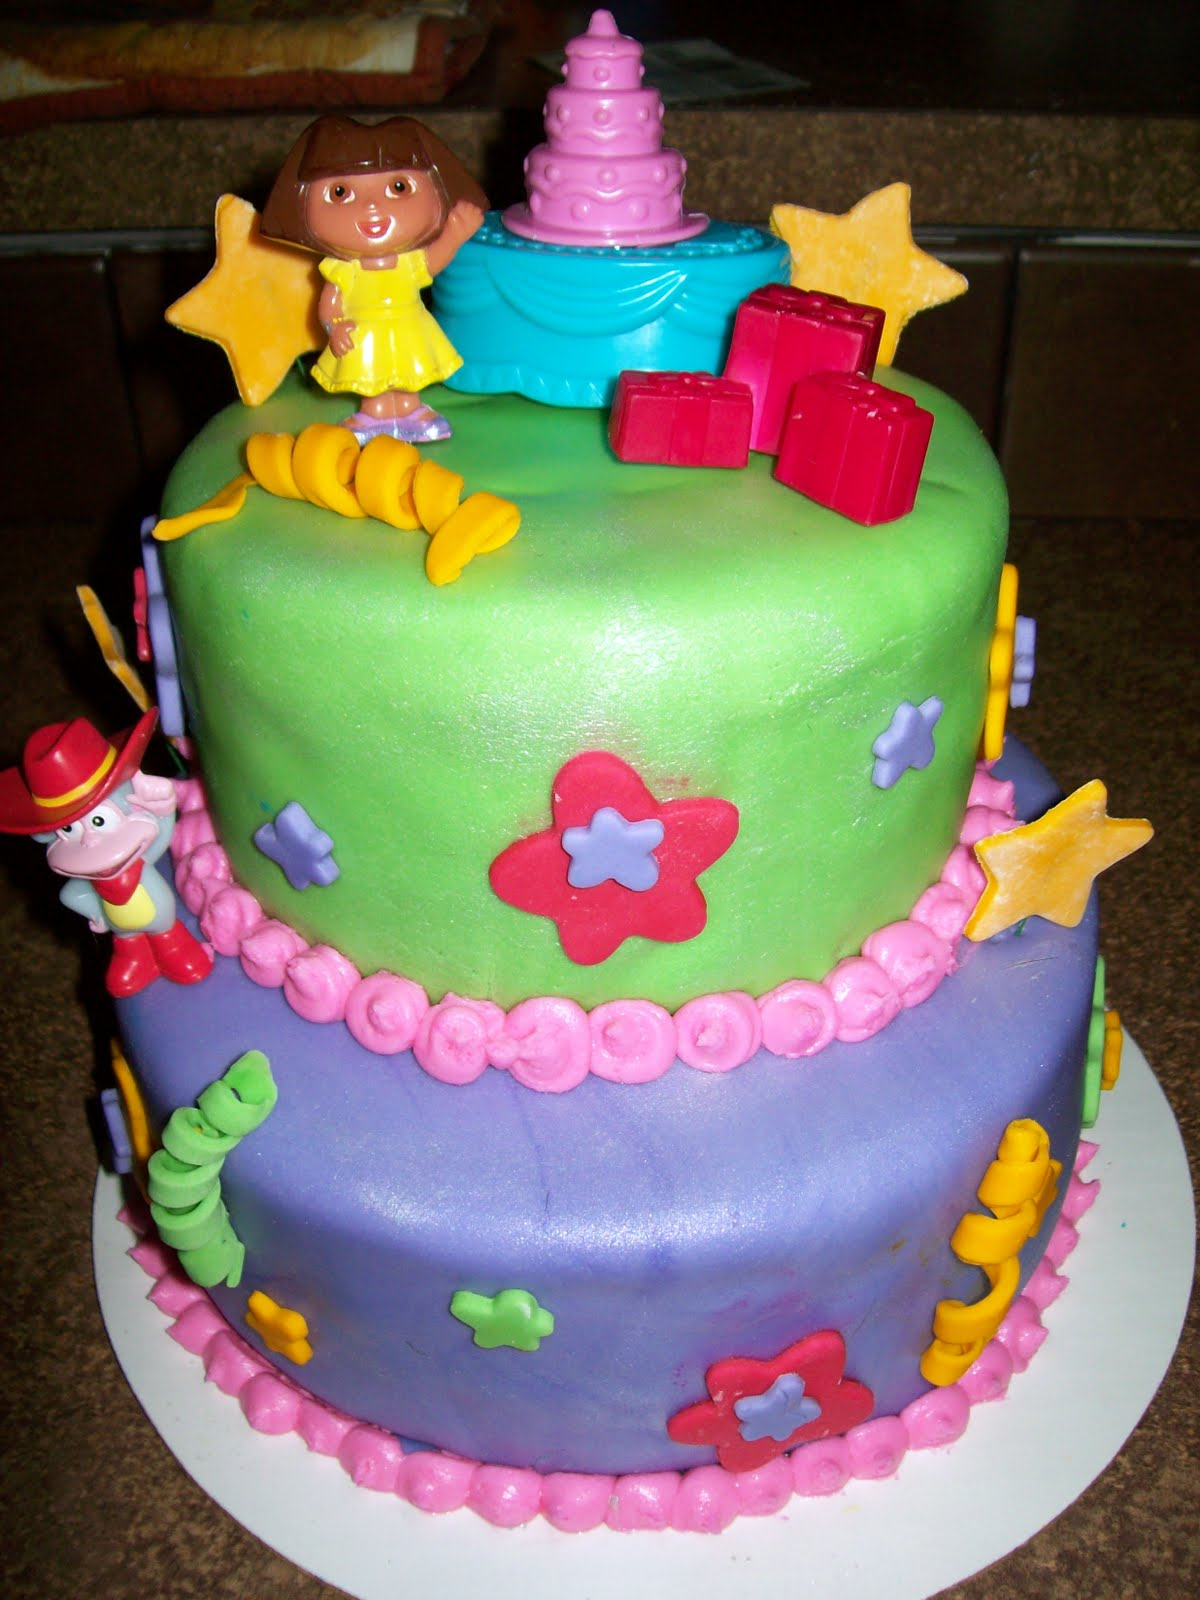 Cake Designs Dora The Explorer : Cakes By Design: Dora, Dora, Dora, the Explorer